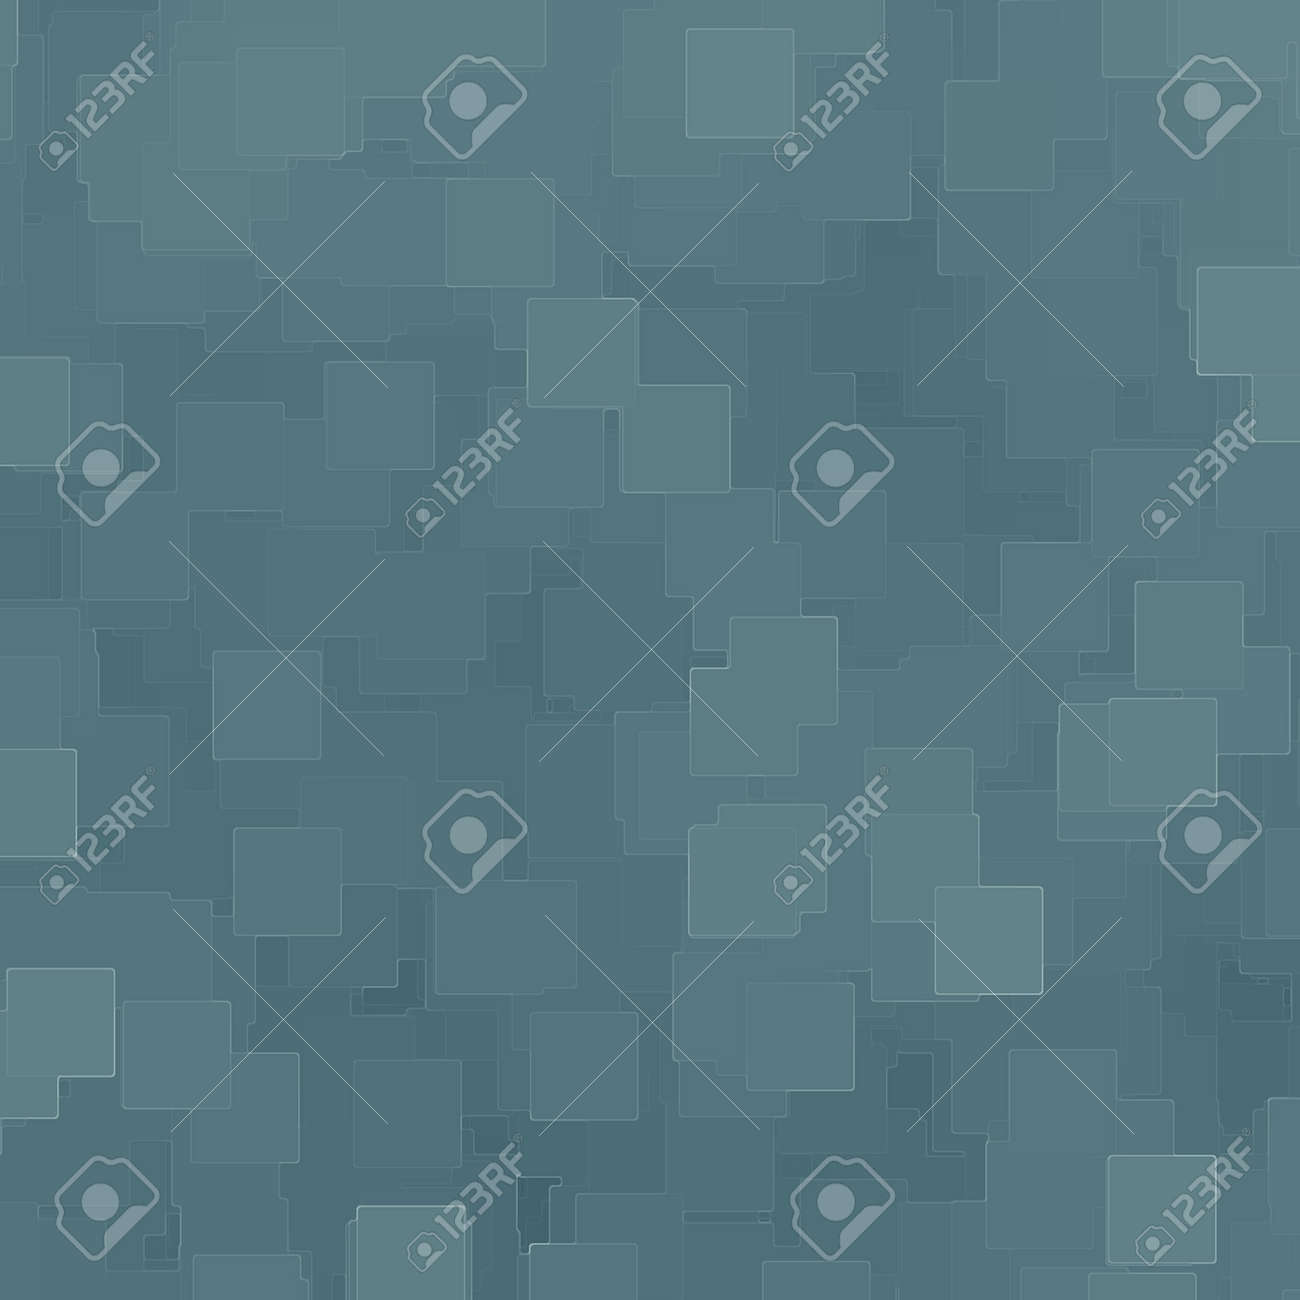 blue abstract background cubes texture, may use as high tech or medical background Stock Photo - 16296263